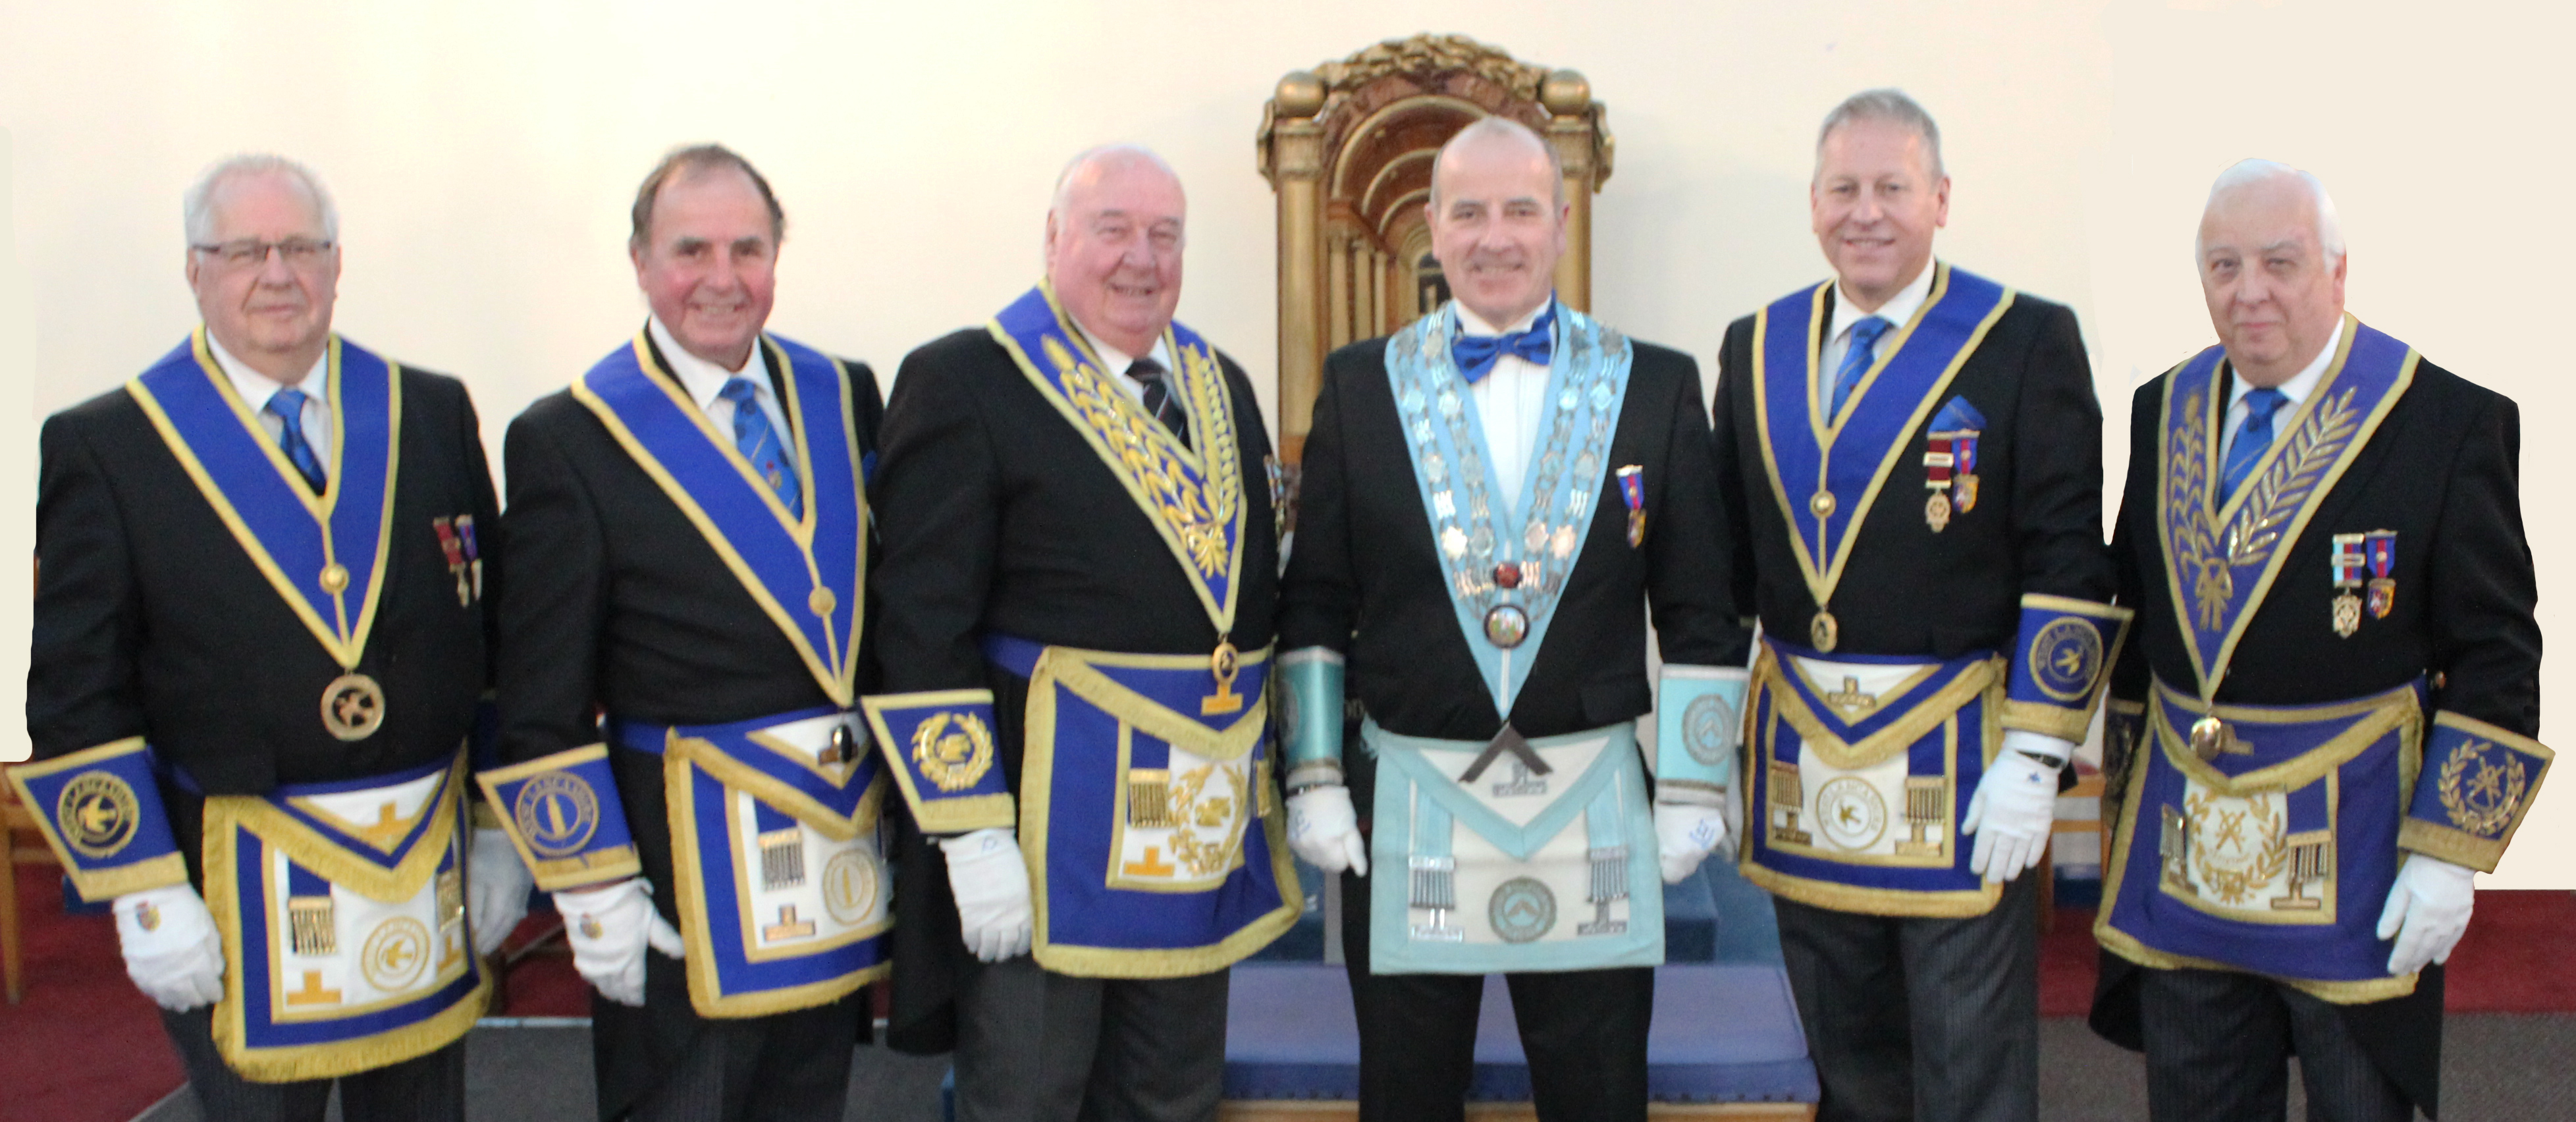 Pictured from left to right are: Rick Walker, Graham Chambers, Peter Levick, Andrew Bradshaw, David Dugdale and Malcolm Alexander.